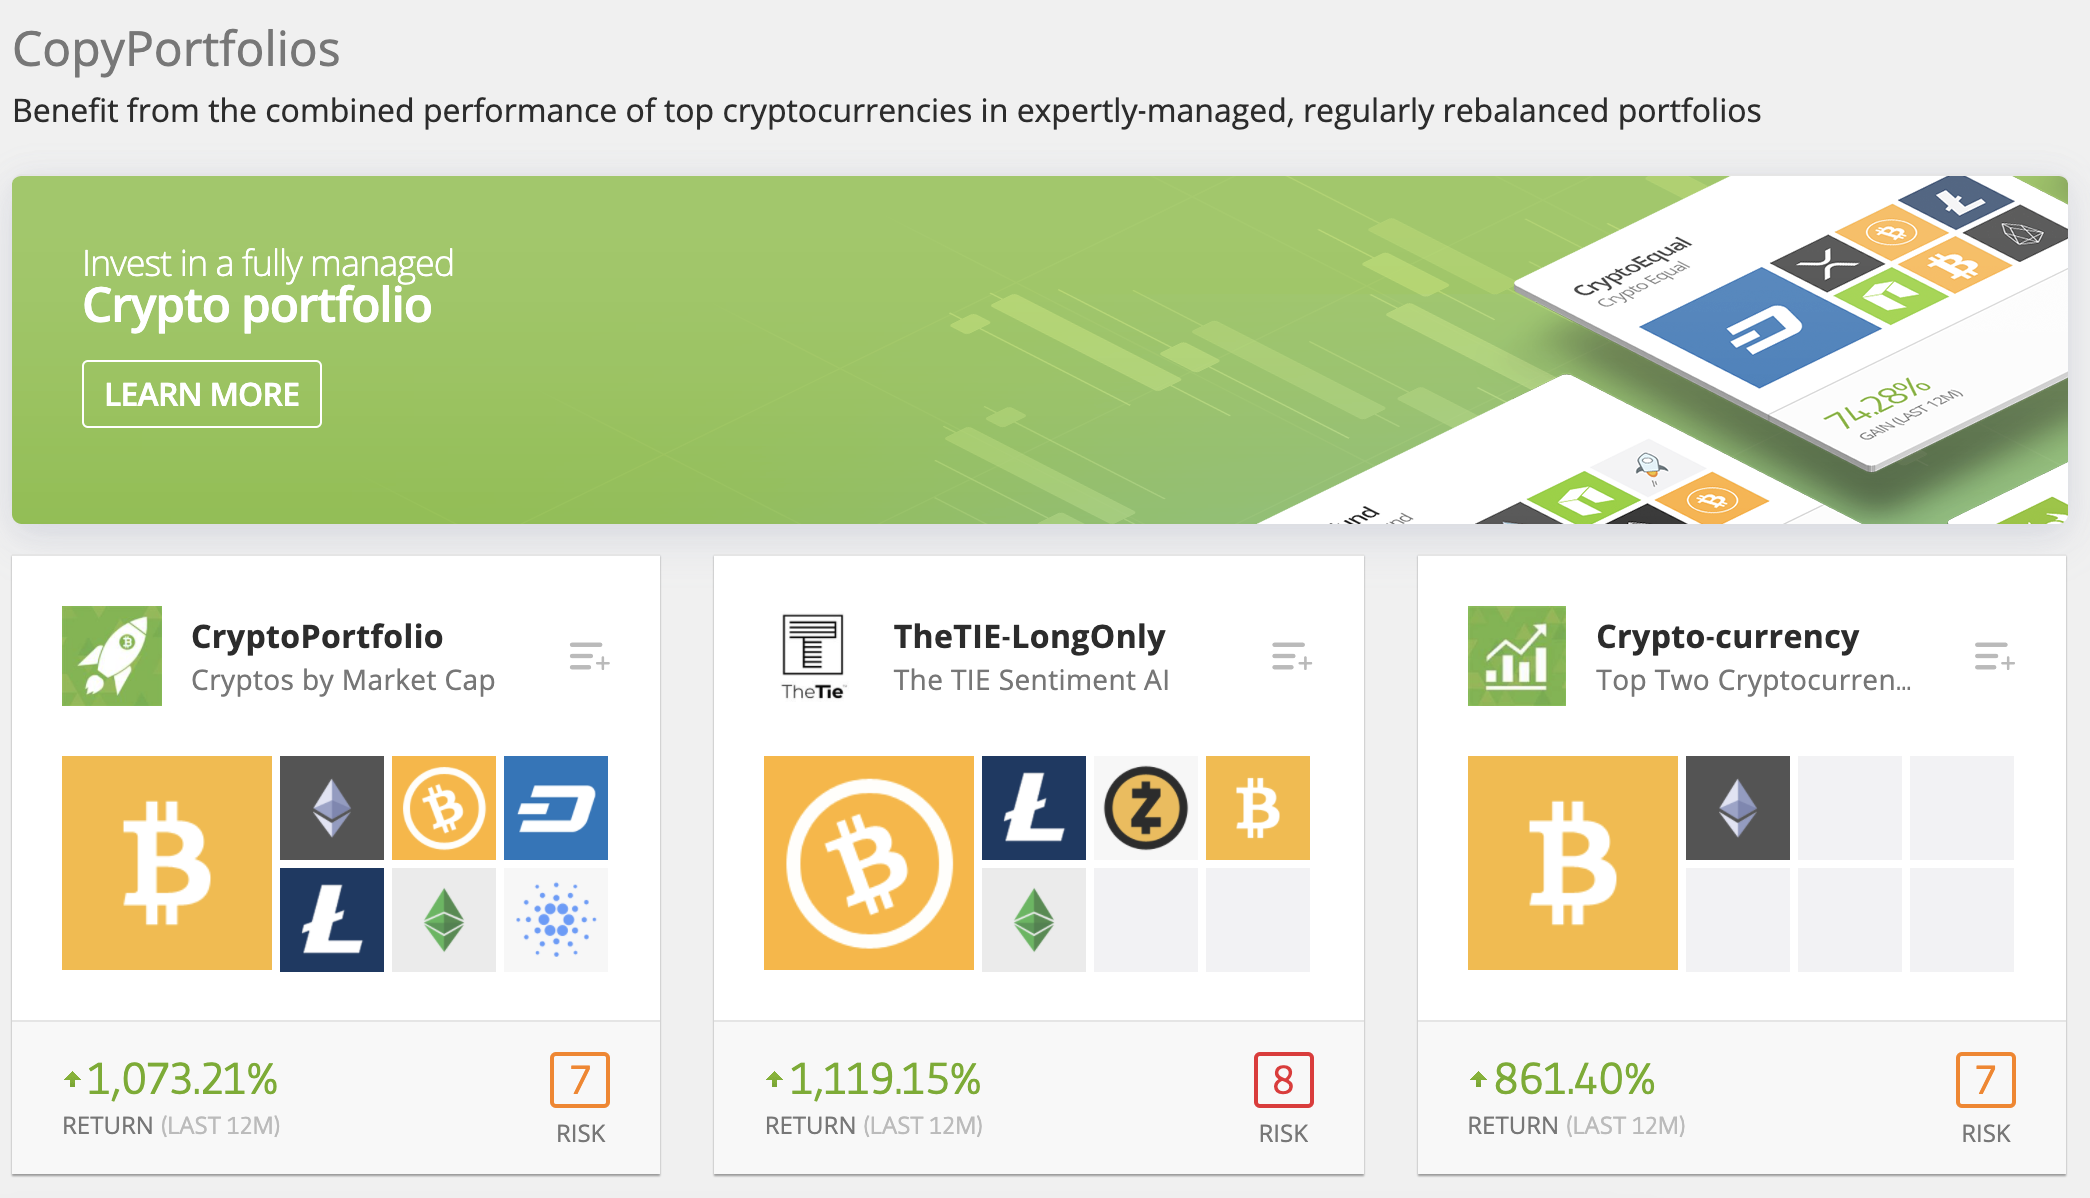 Screenshot from etoro.com showing the cryptocurrency Copy Portfolios that are available through the platform. These are kind of like ETFs made by eToro. They are fully managed and automatically rebalanced.